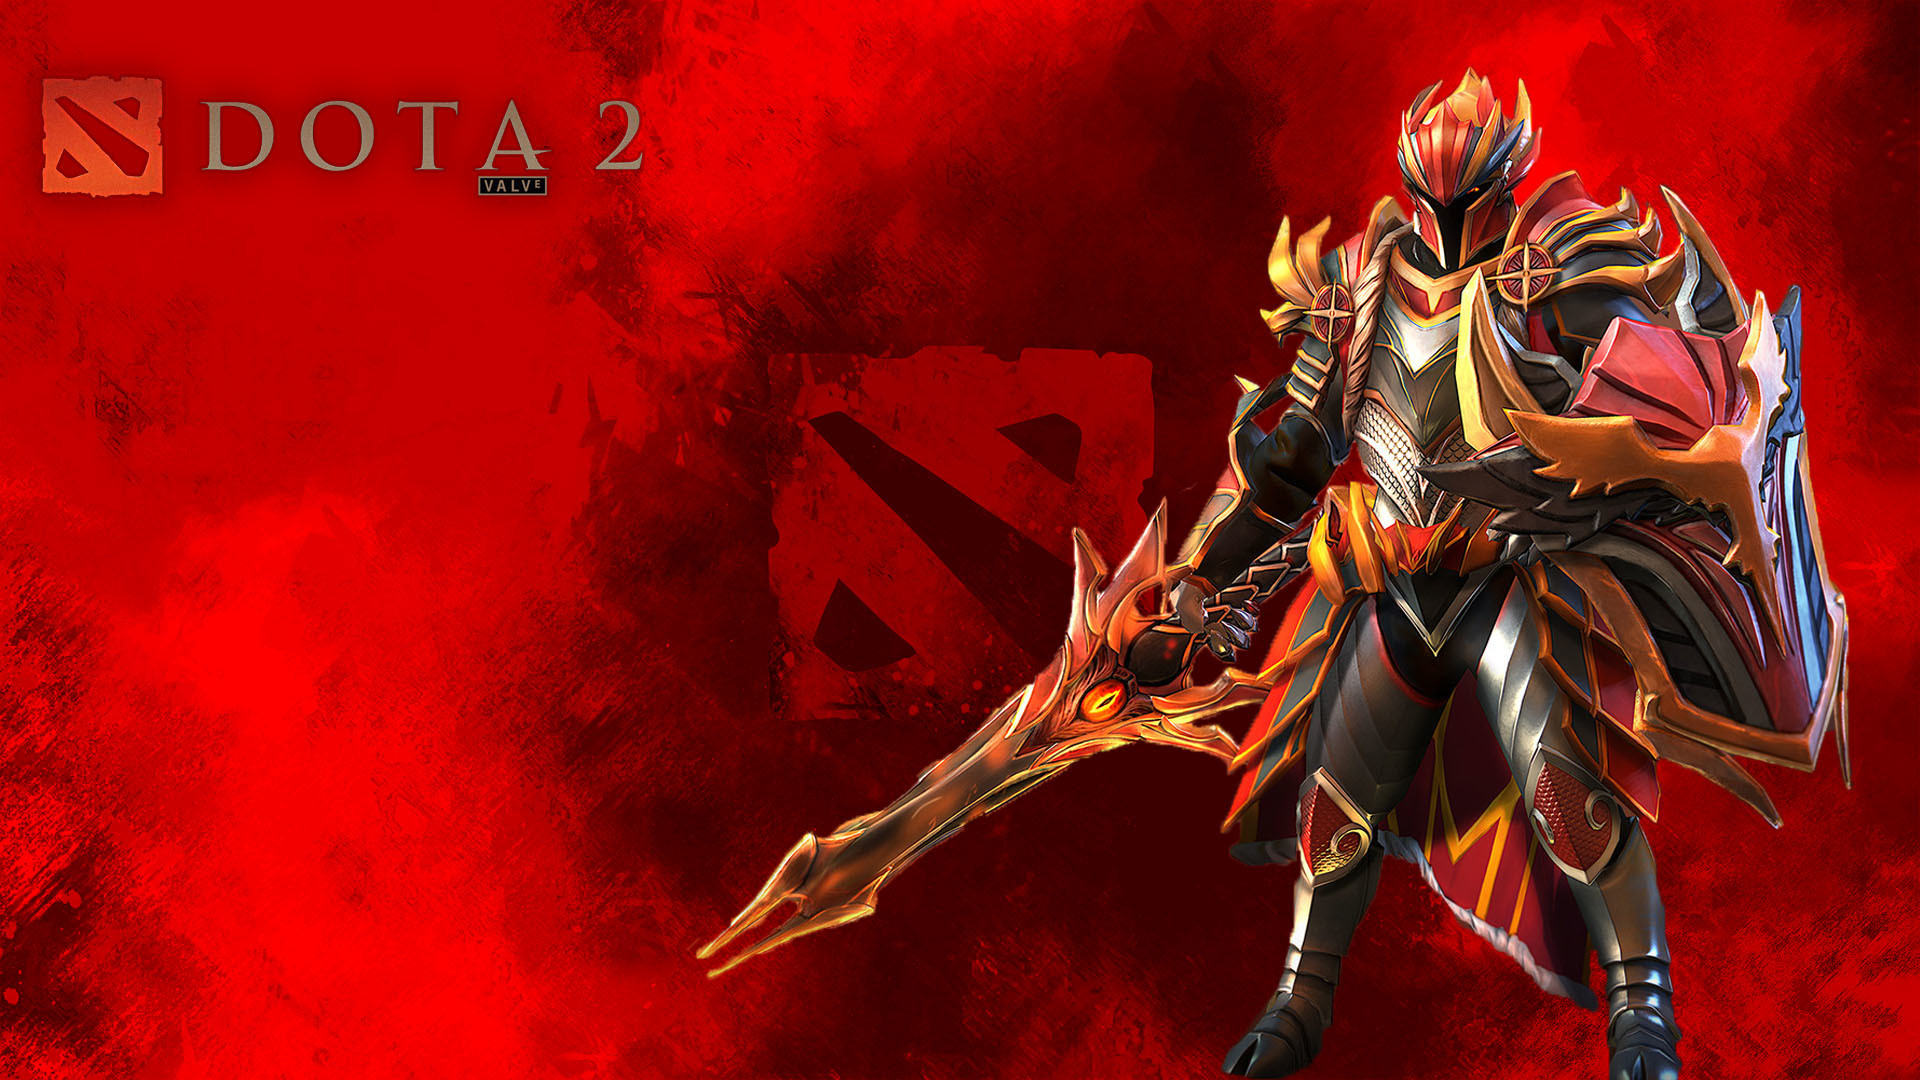 1920x1080 dota 2 dragon knight wallpapers iphone with high resolution wallpaper on  games category similar with